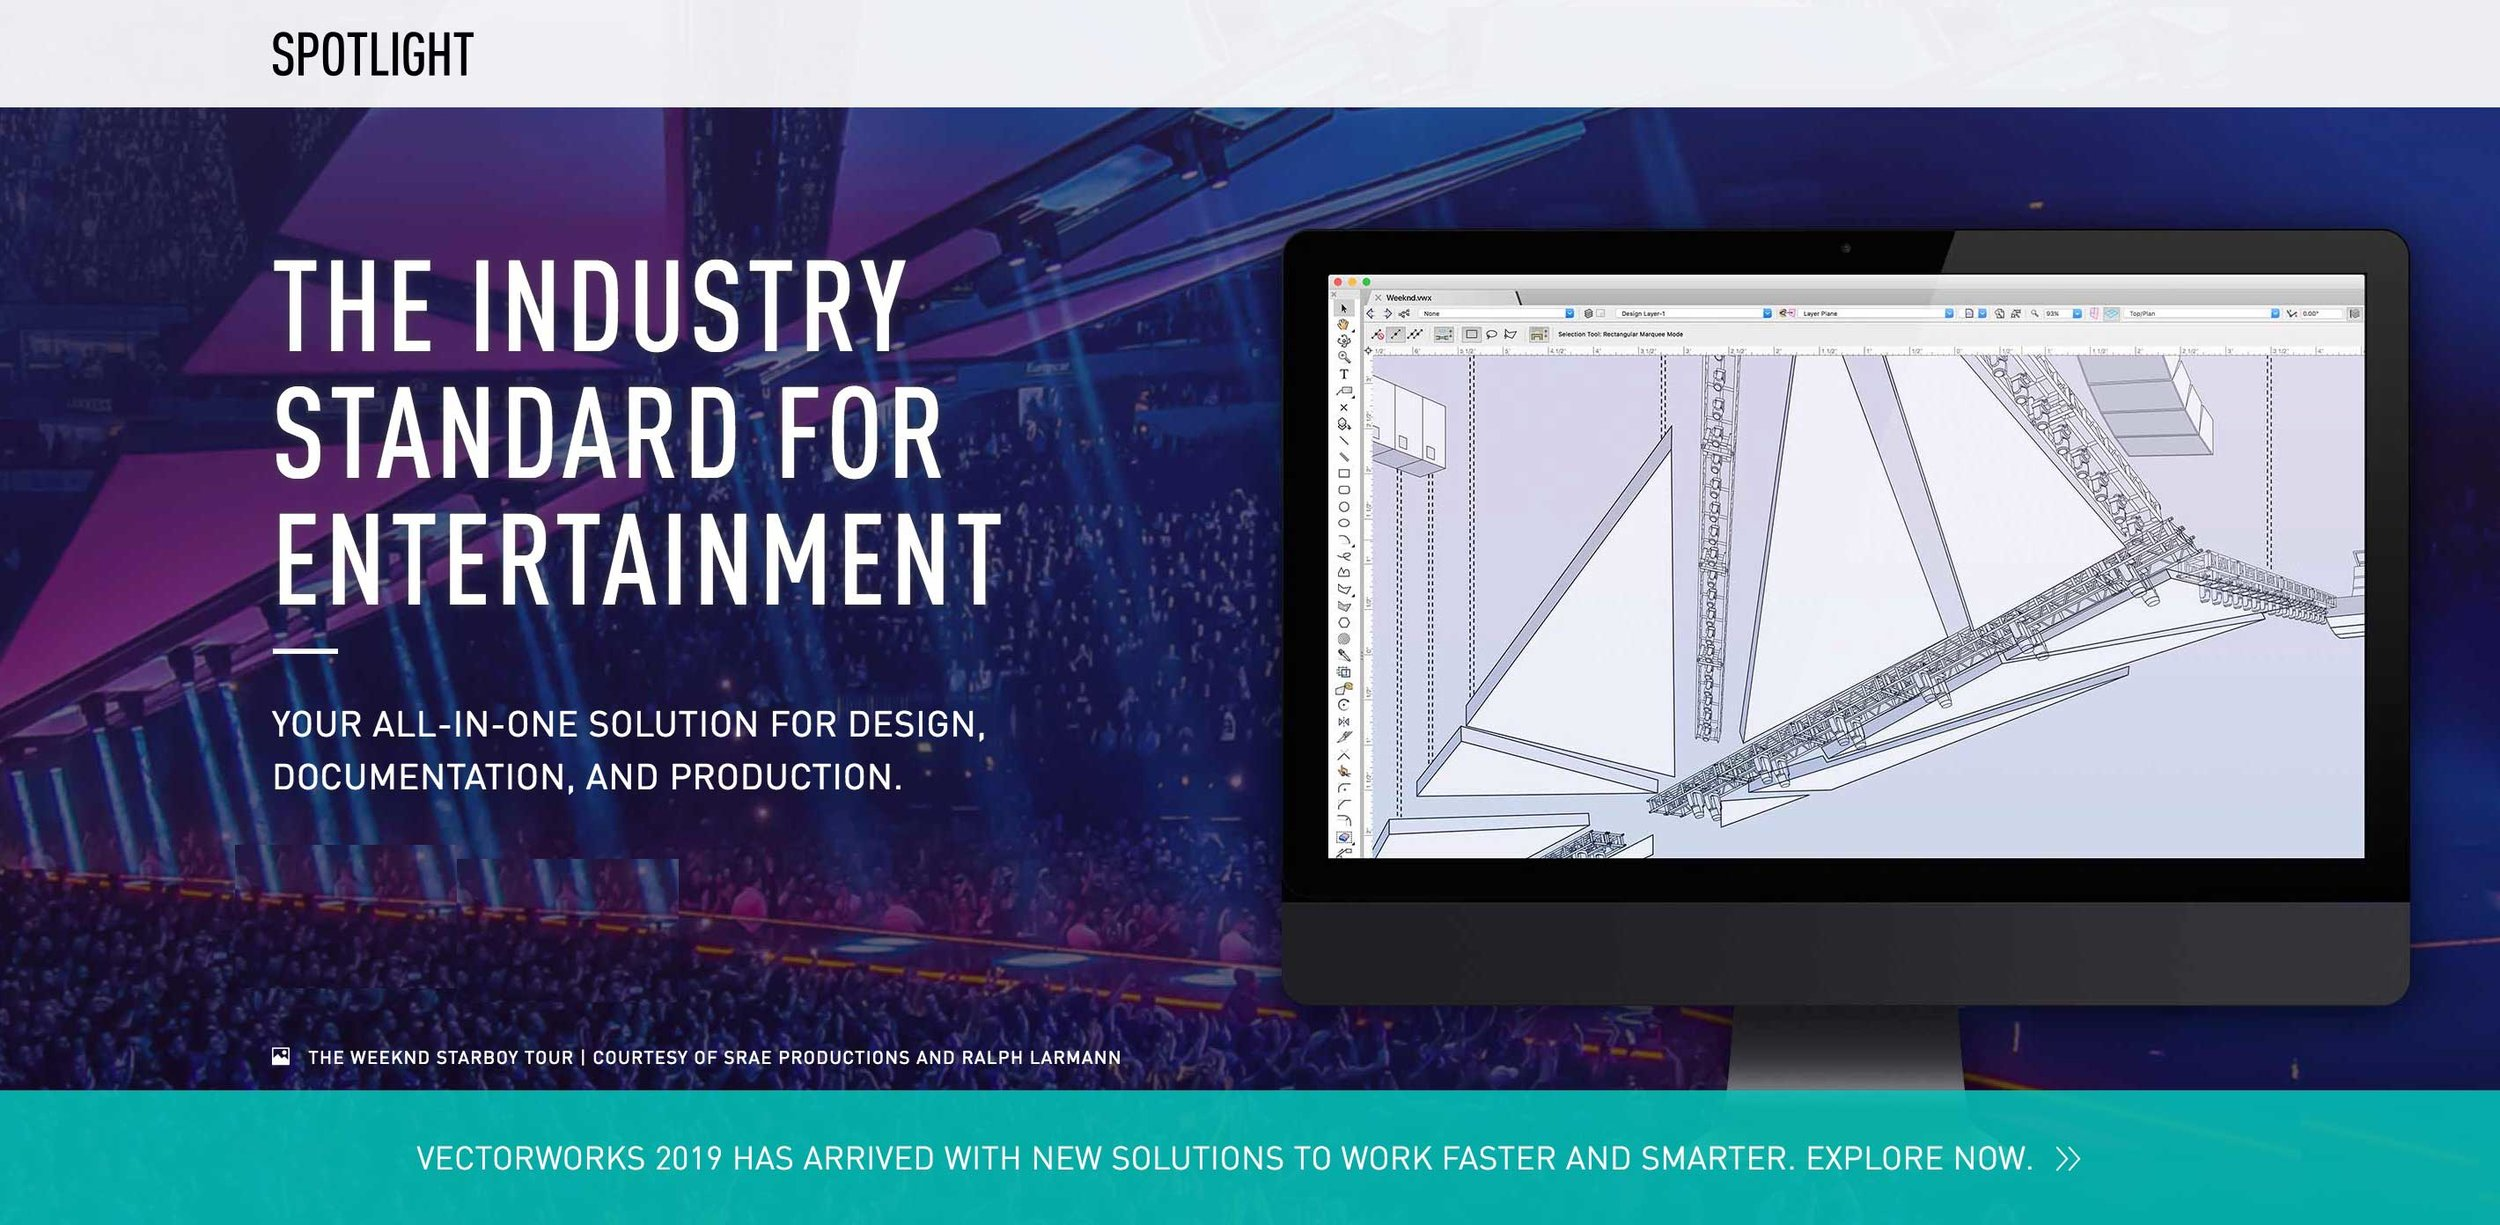 _Vectorworks_Spotlight___Entertainment___Lighting_Design_Software.jpg